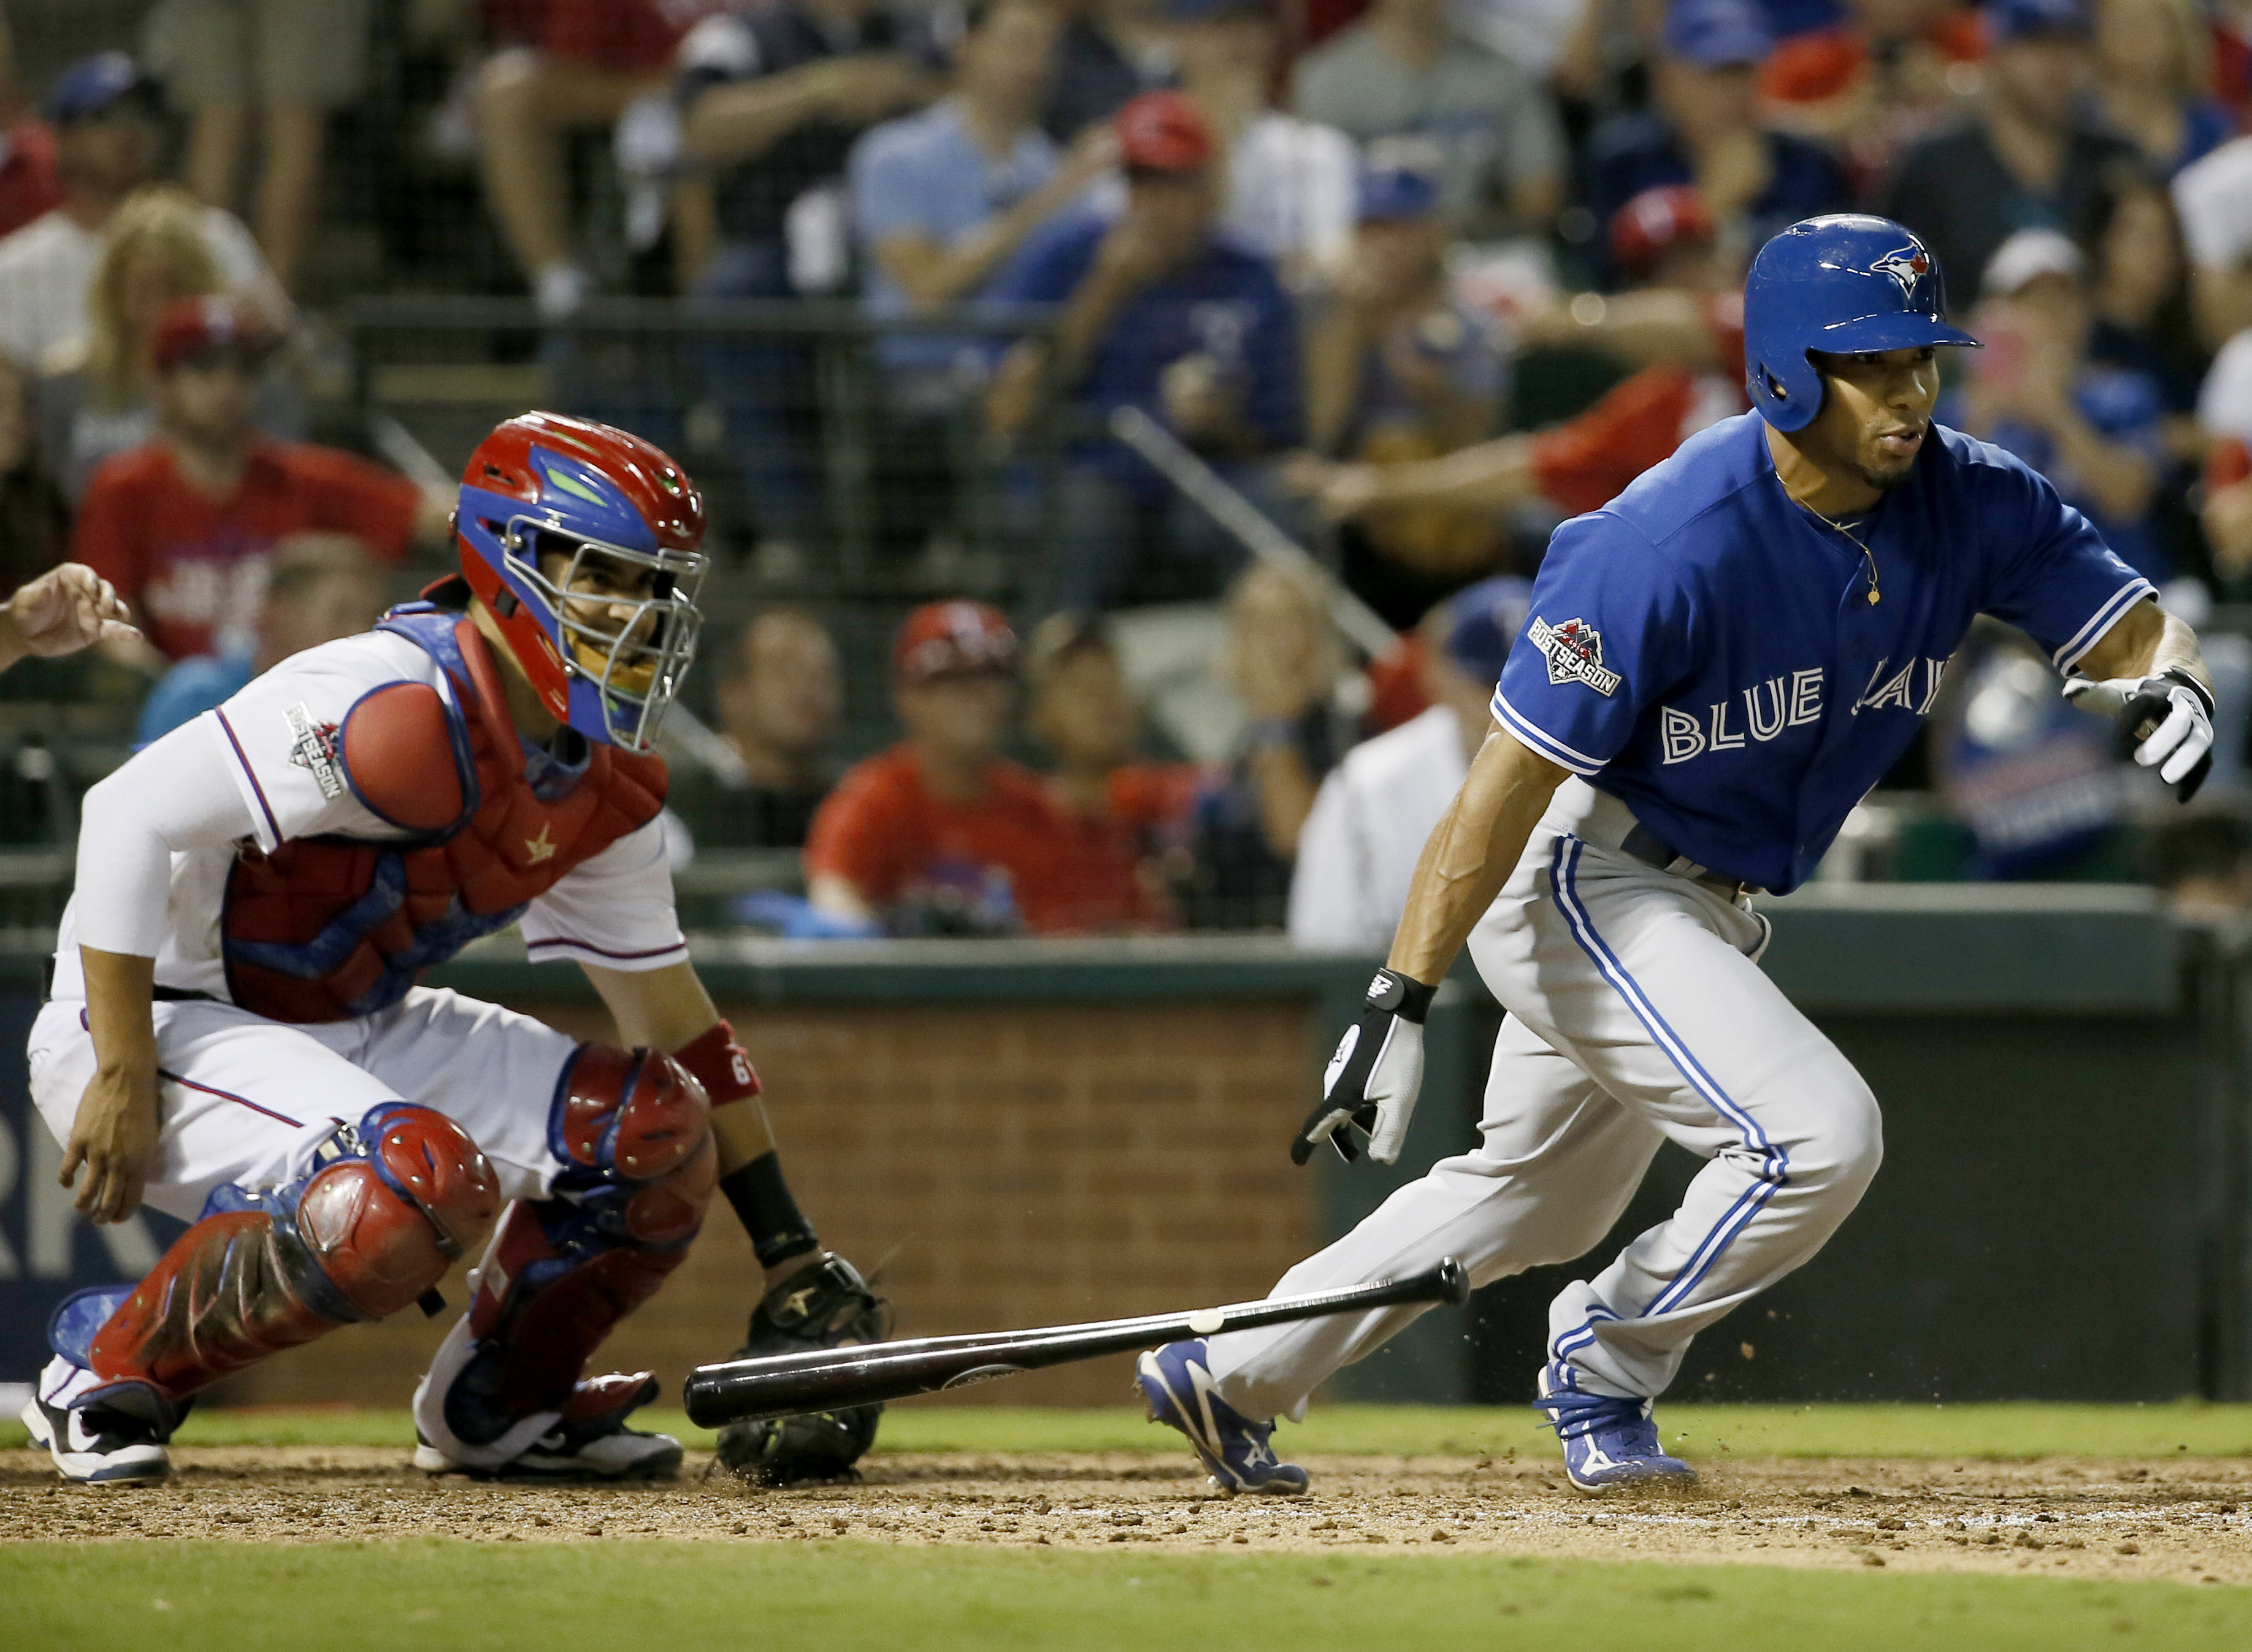 FILE - In this Oct. 11, 2015, file photo, Toronto Blue Jays' Ben Revere, right, singles against the Texas Rangers during the seventh inning in Game 3 of baseball's American League Division Series in Arlington, Texas. The Washington Nationals accommodated